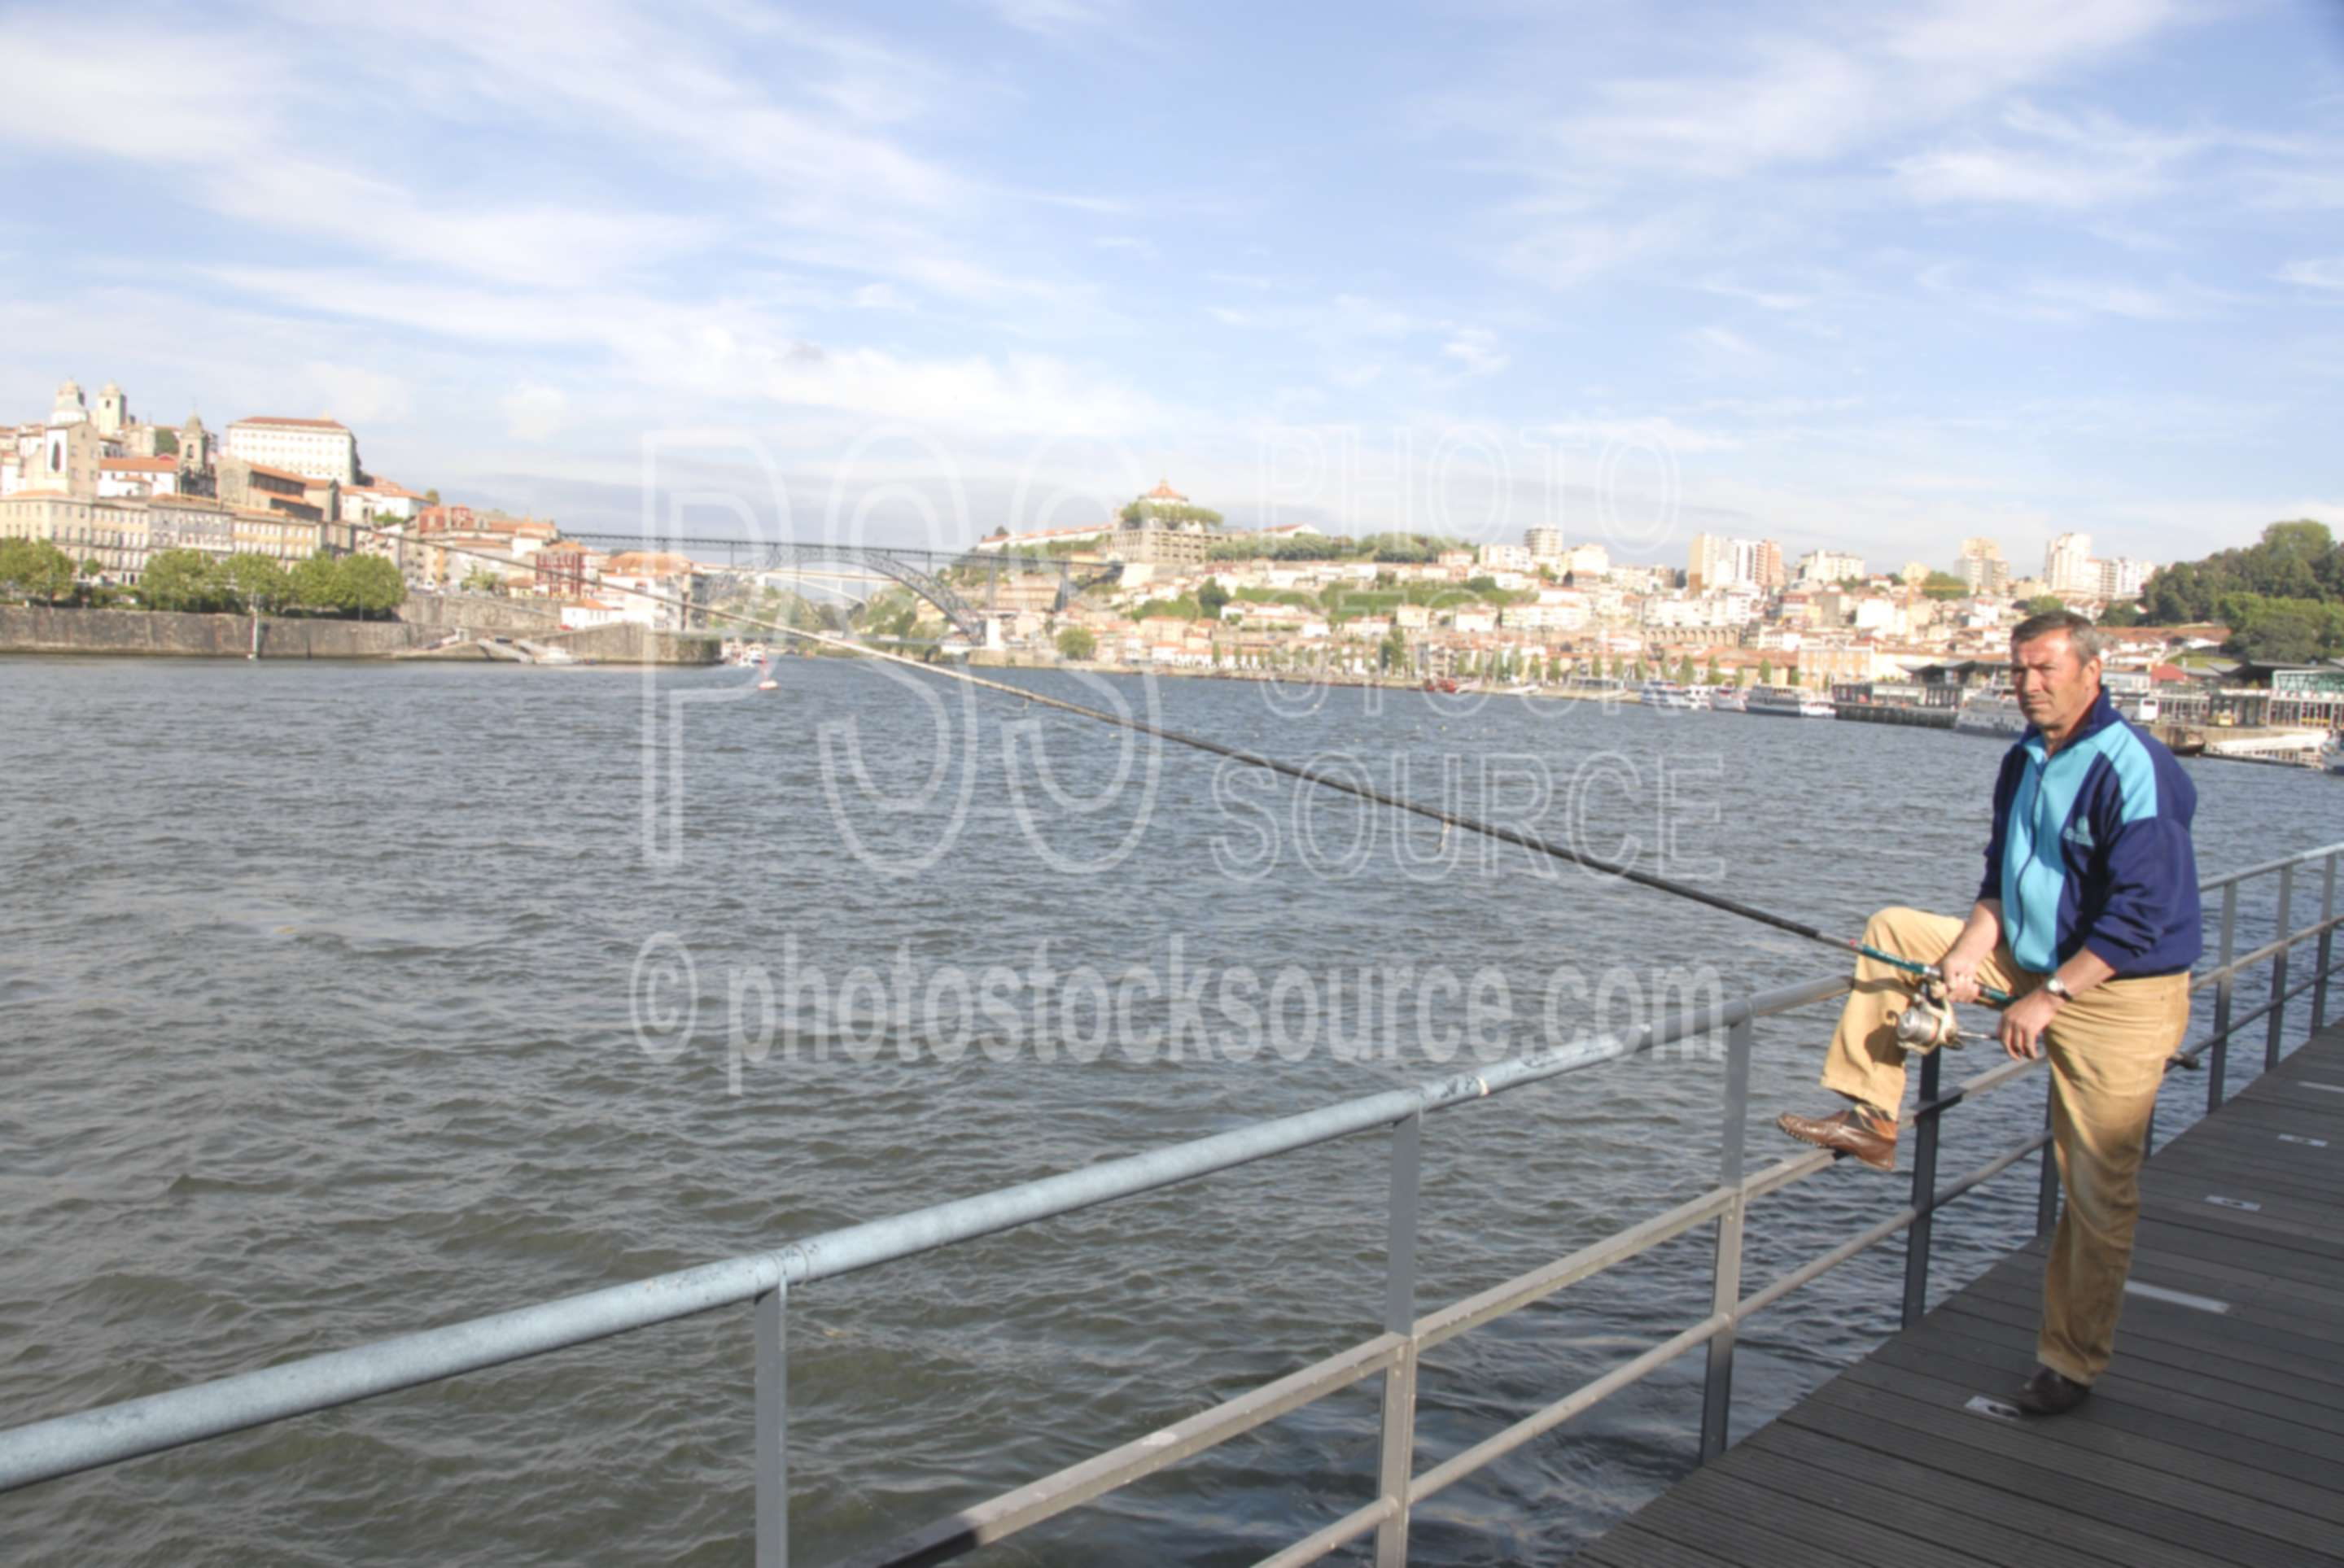 Douro River Fisherman,porto,oporto,waterfront,fisherman,fishing